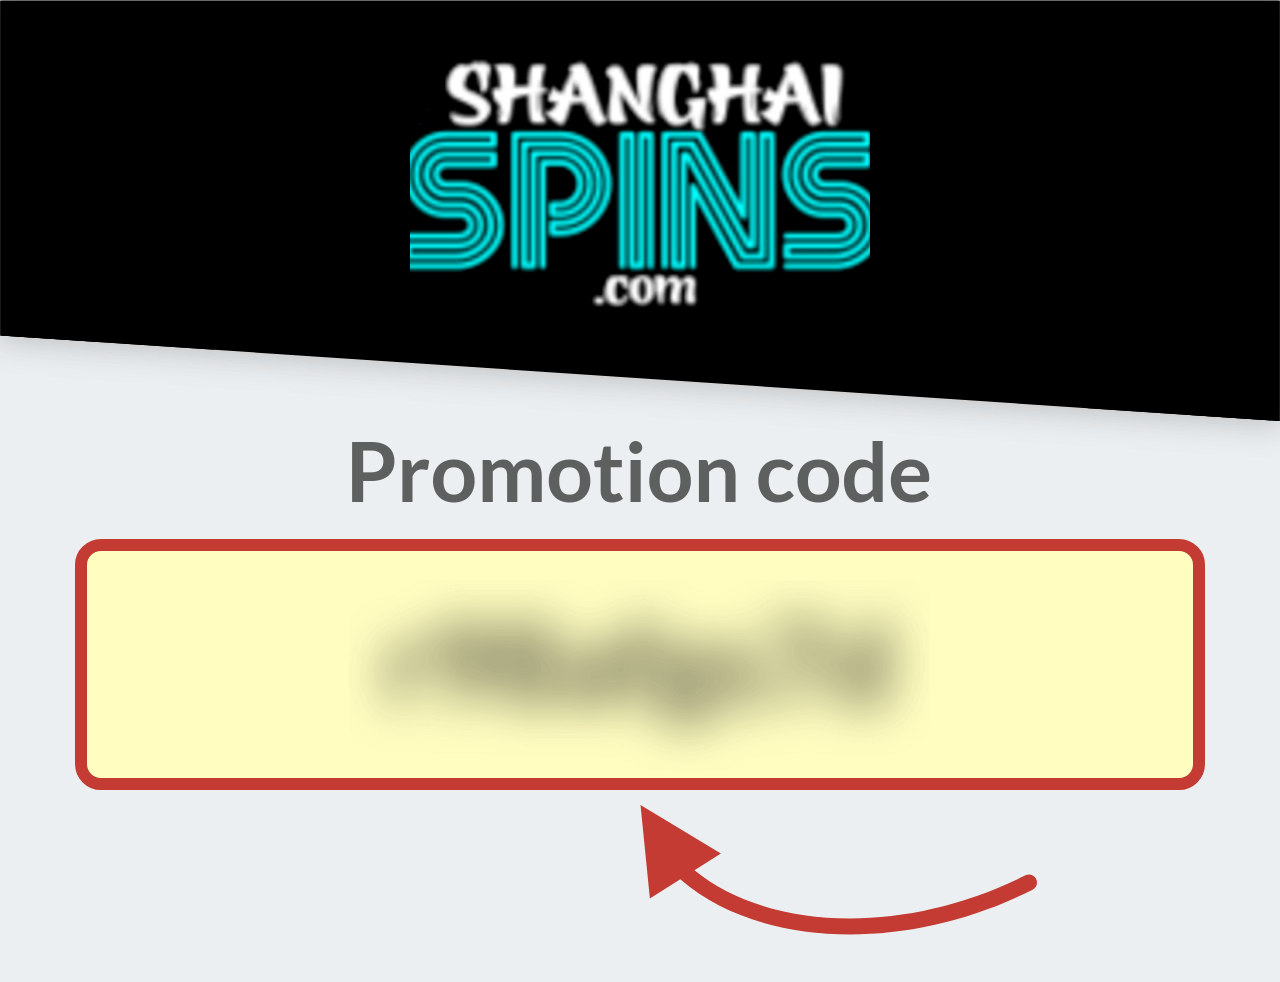 Shanghai Spins Promotion Code